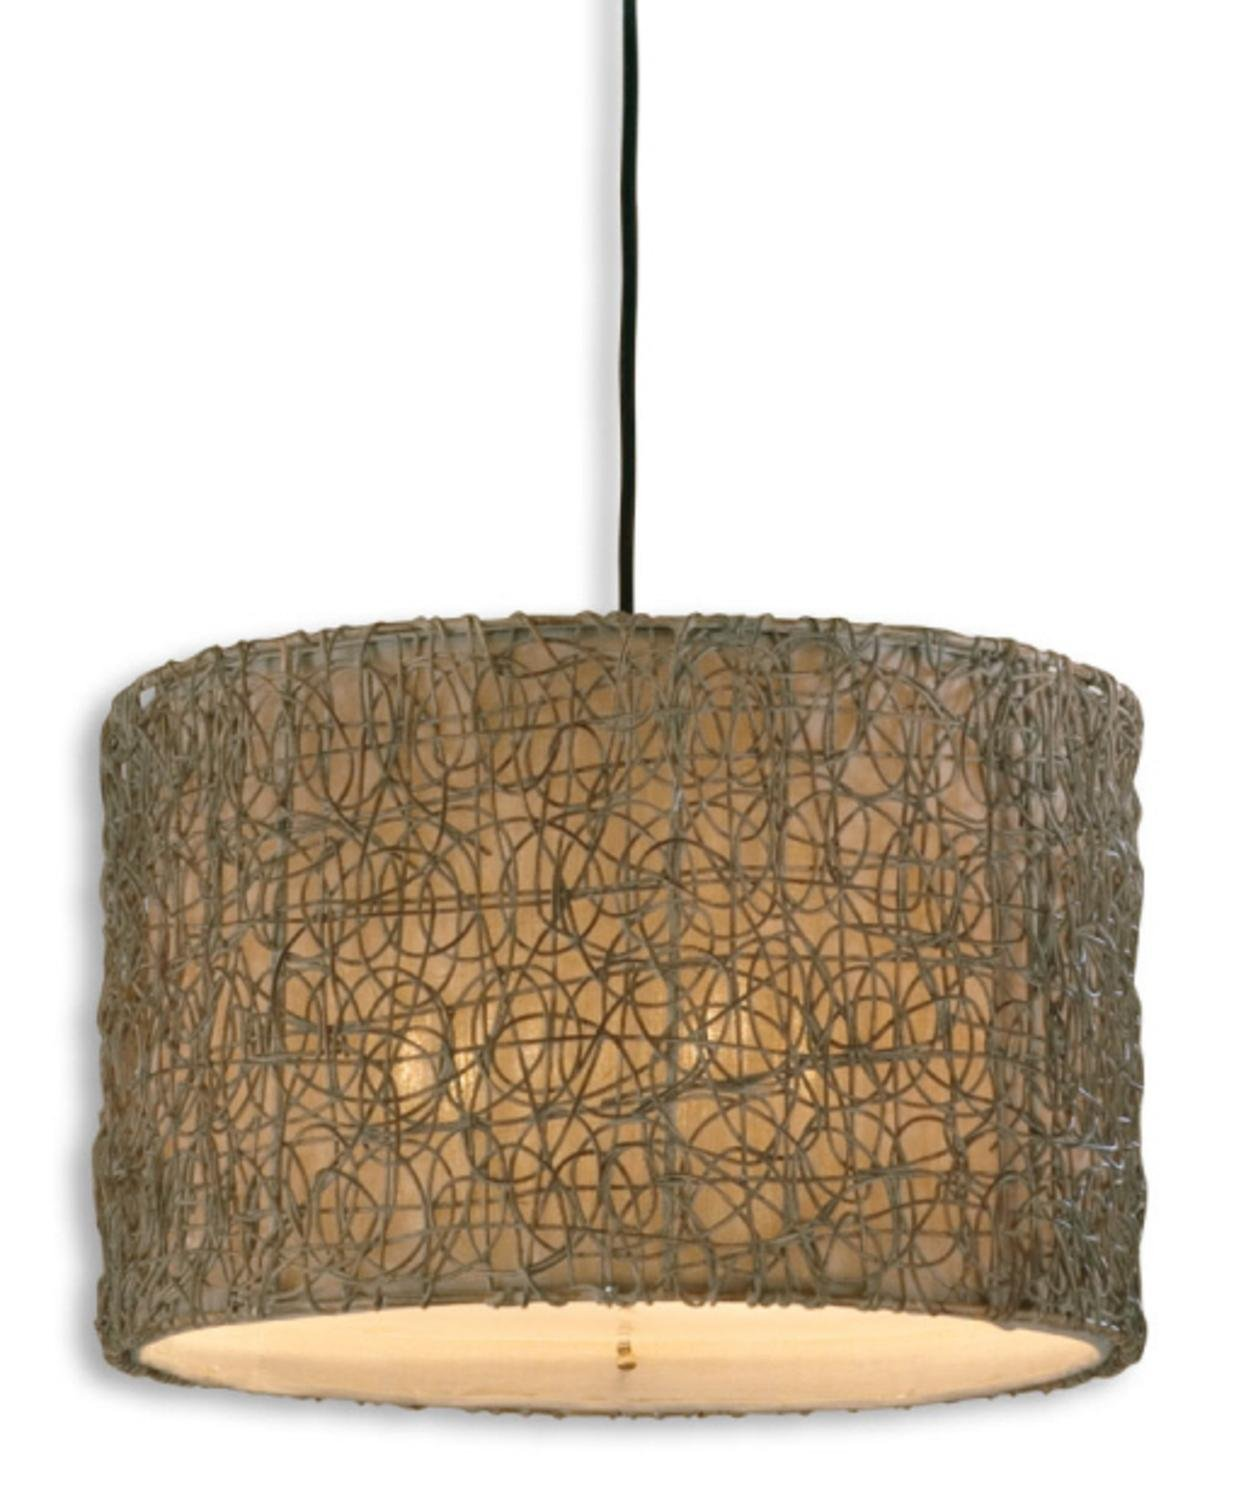 19'' Ivory, Brown and Gray Knotted Rattan Hanging Drum Pendant Light Shade